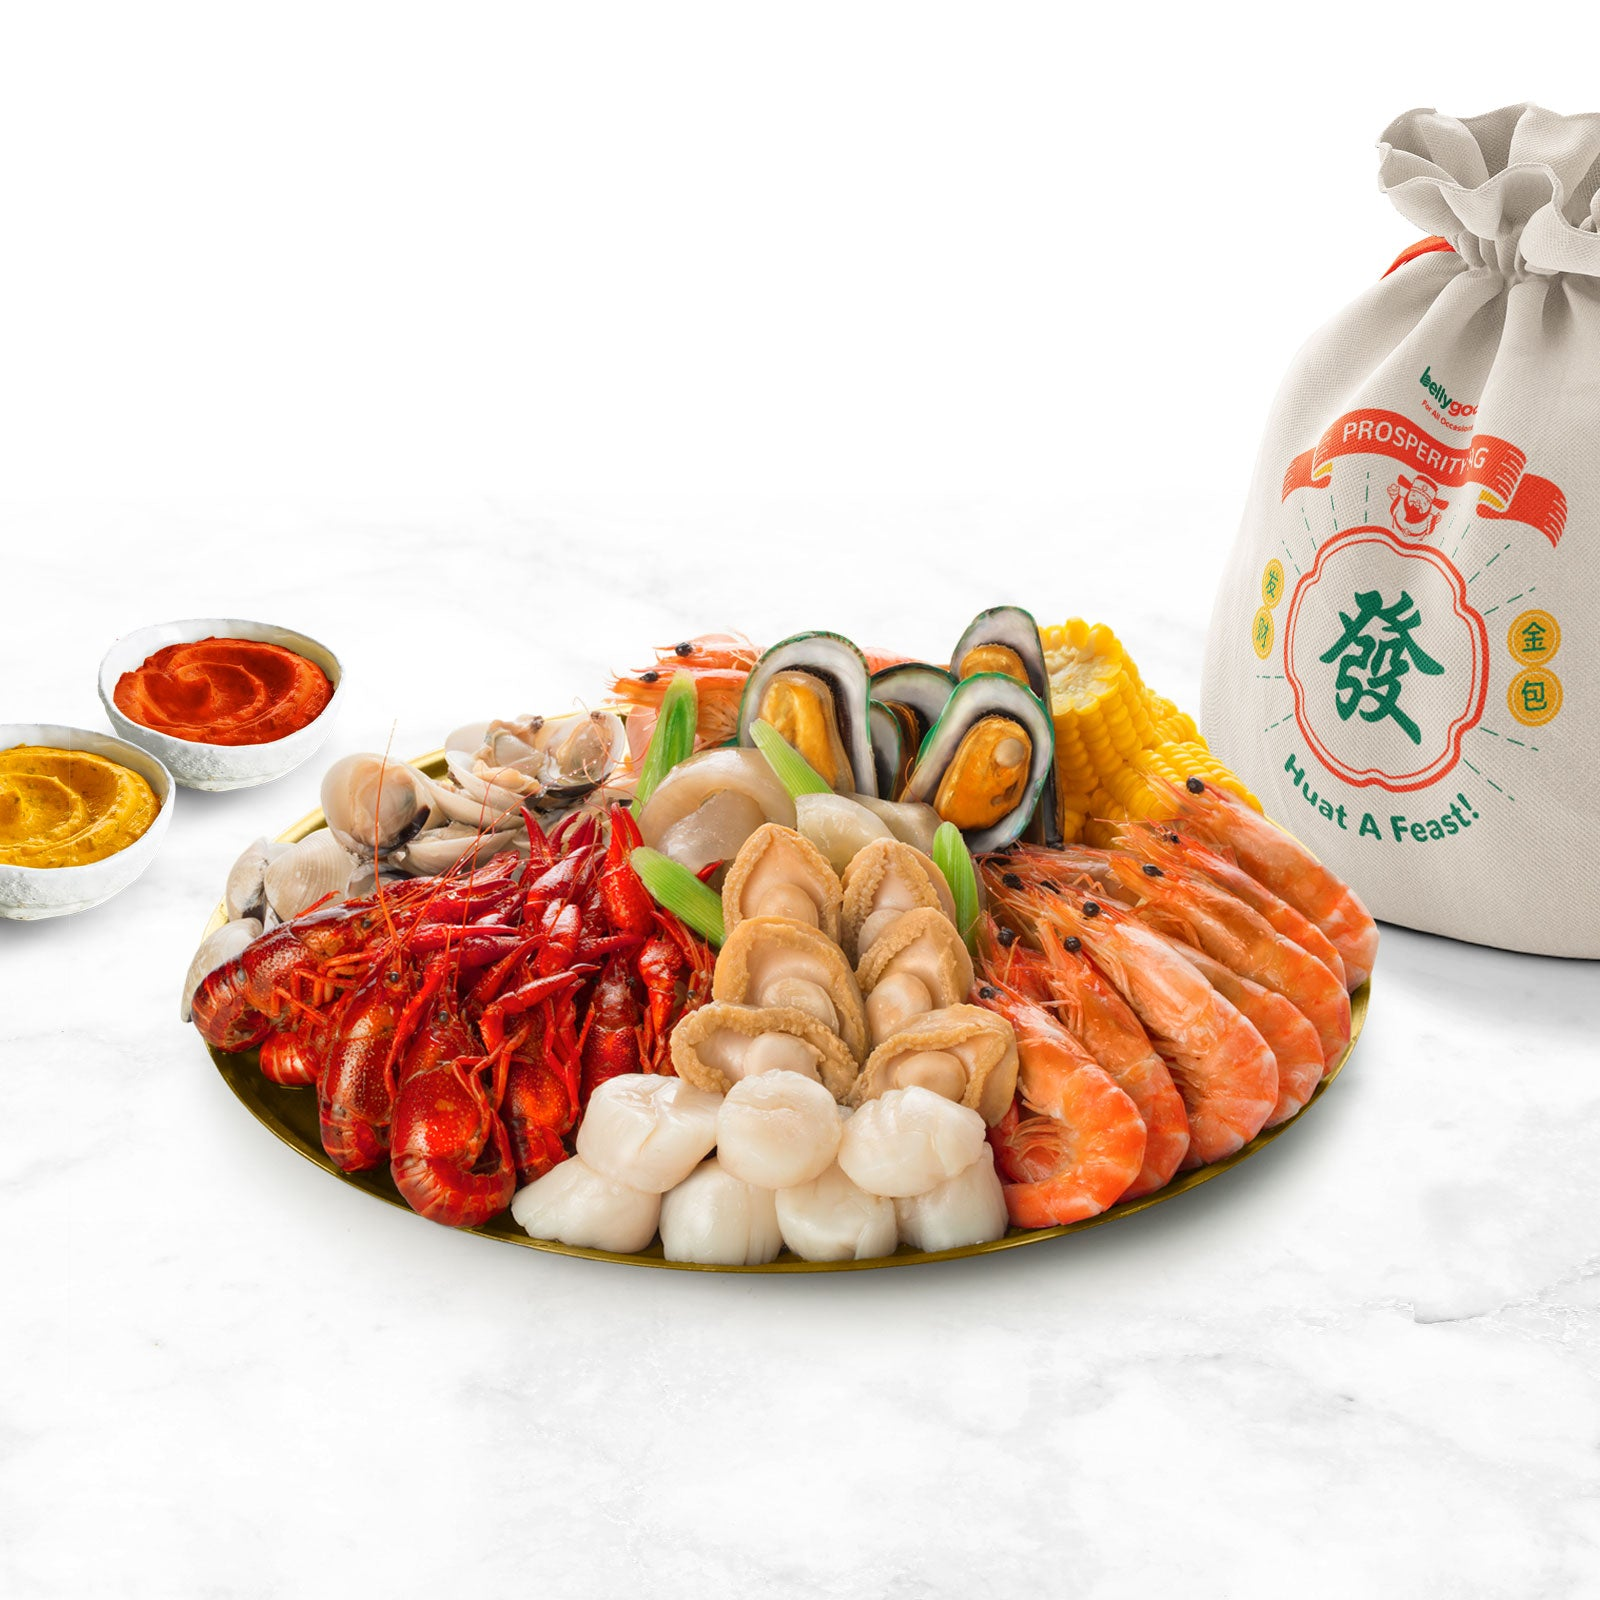 BellyGood 'Huat a Feast' Seafood Prosperity Bag